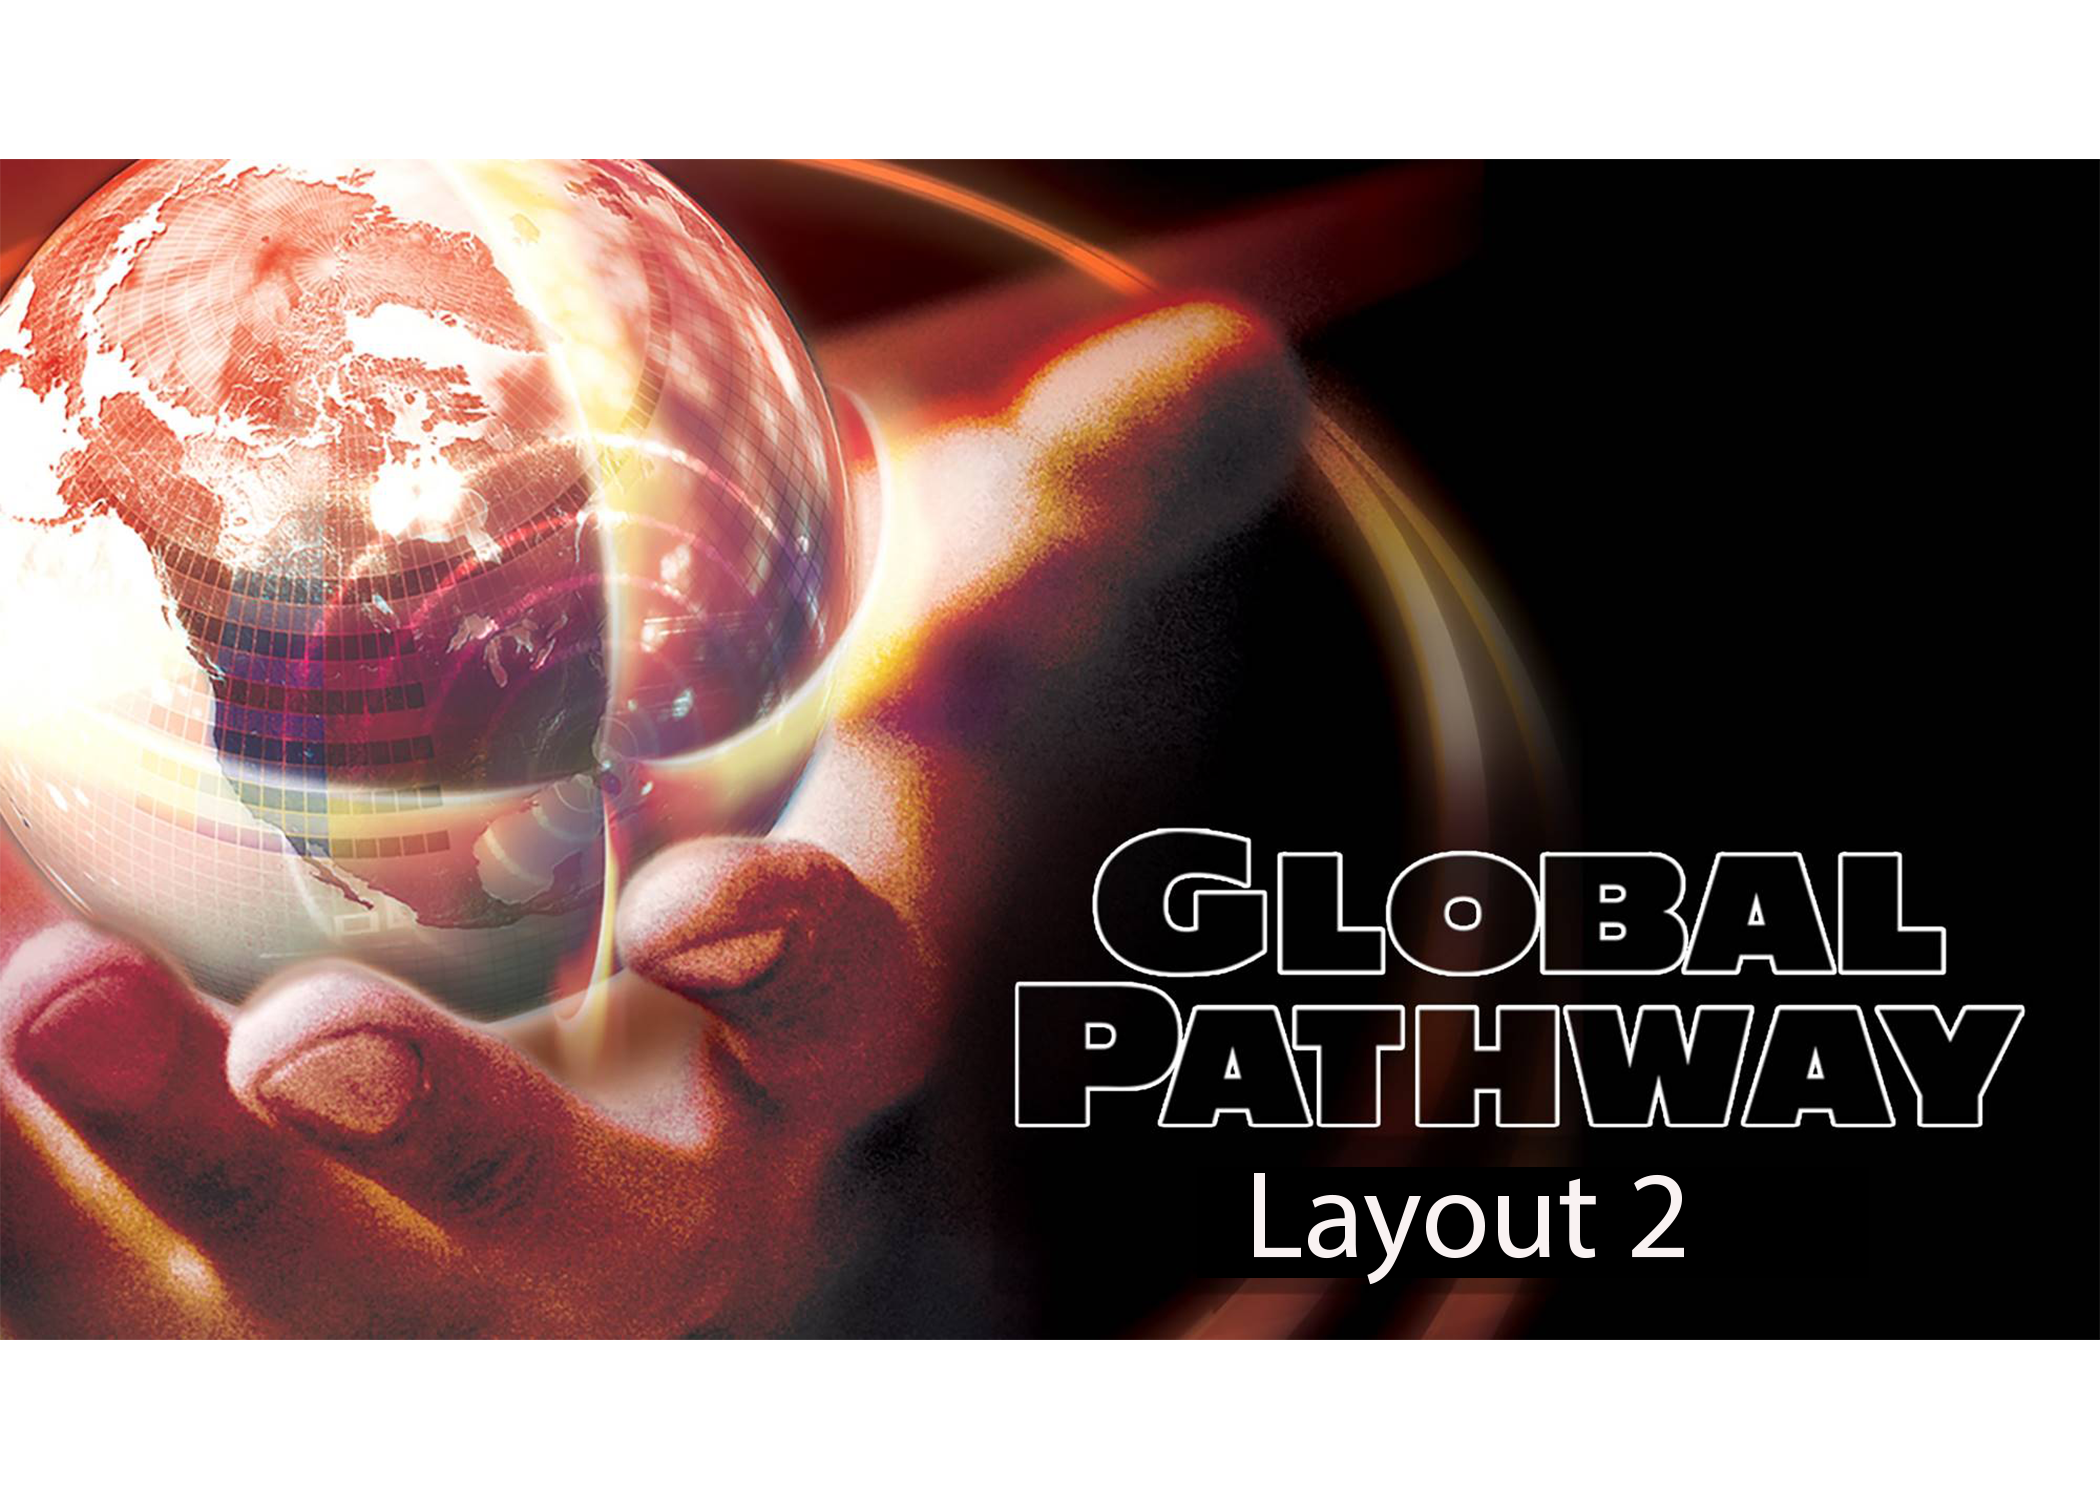 Global Pathway Slide (GPIN)-Layout 2.png